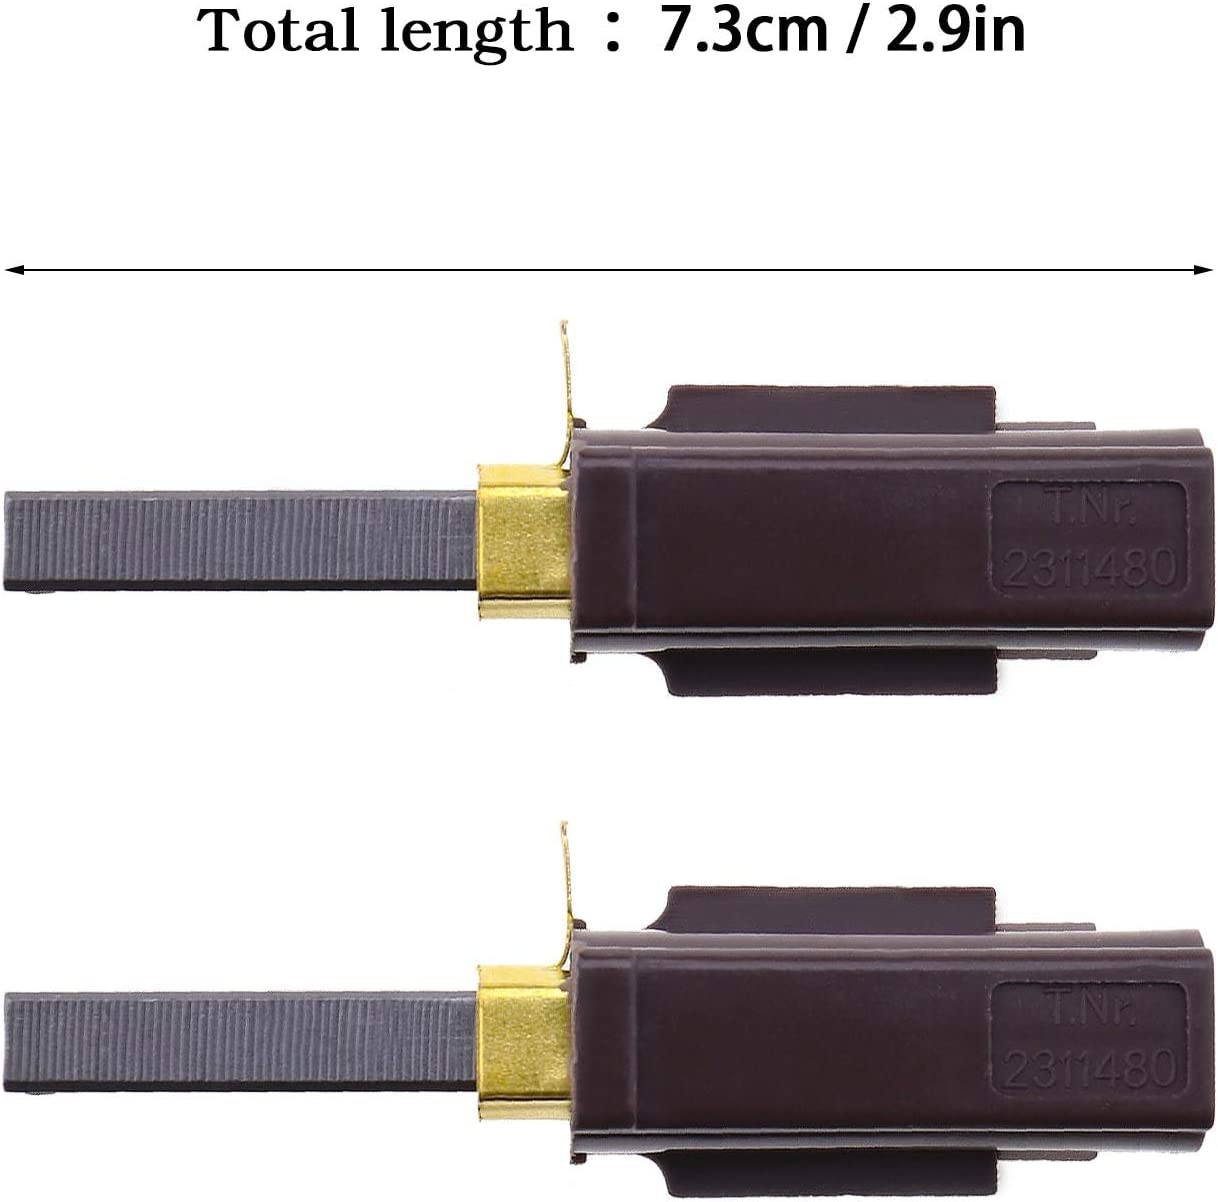 2 Pcs Vacuum Cleaner Carbon Brushes Holder Replacement Fit for Numatic Parts Compatible with 230155 230240 2311480